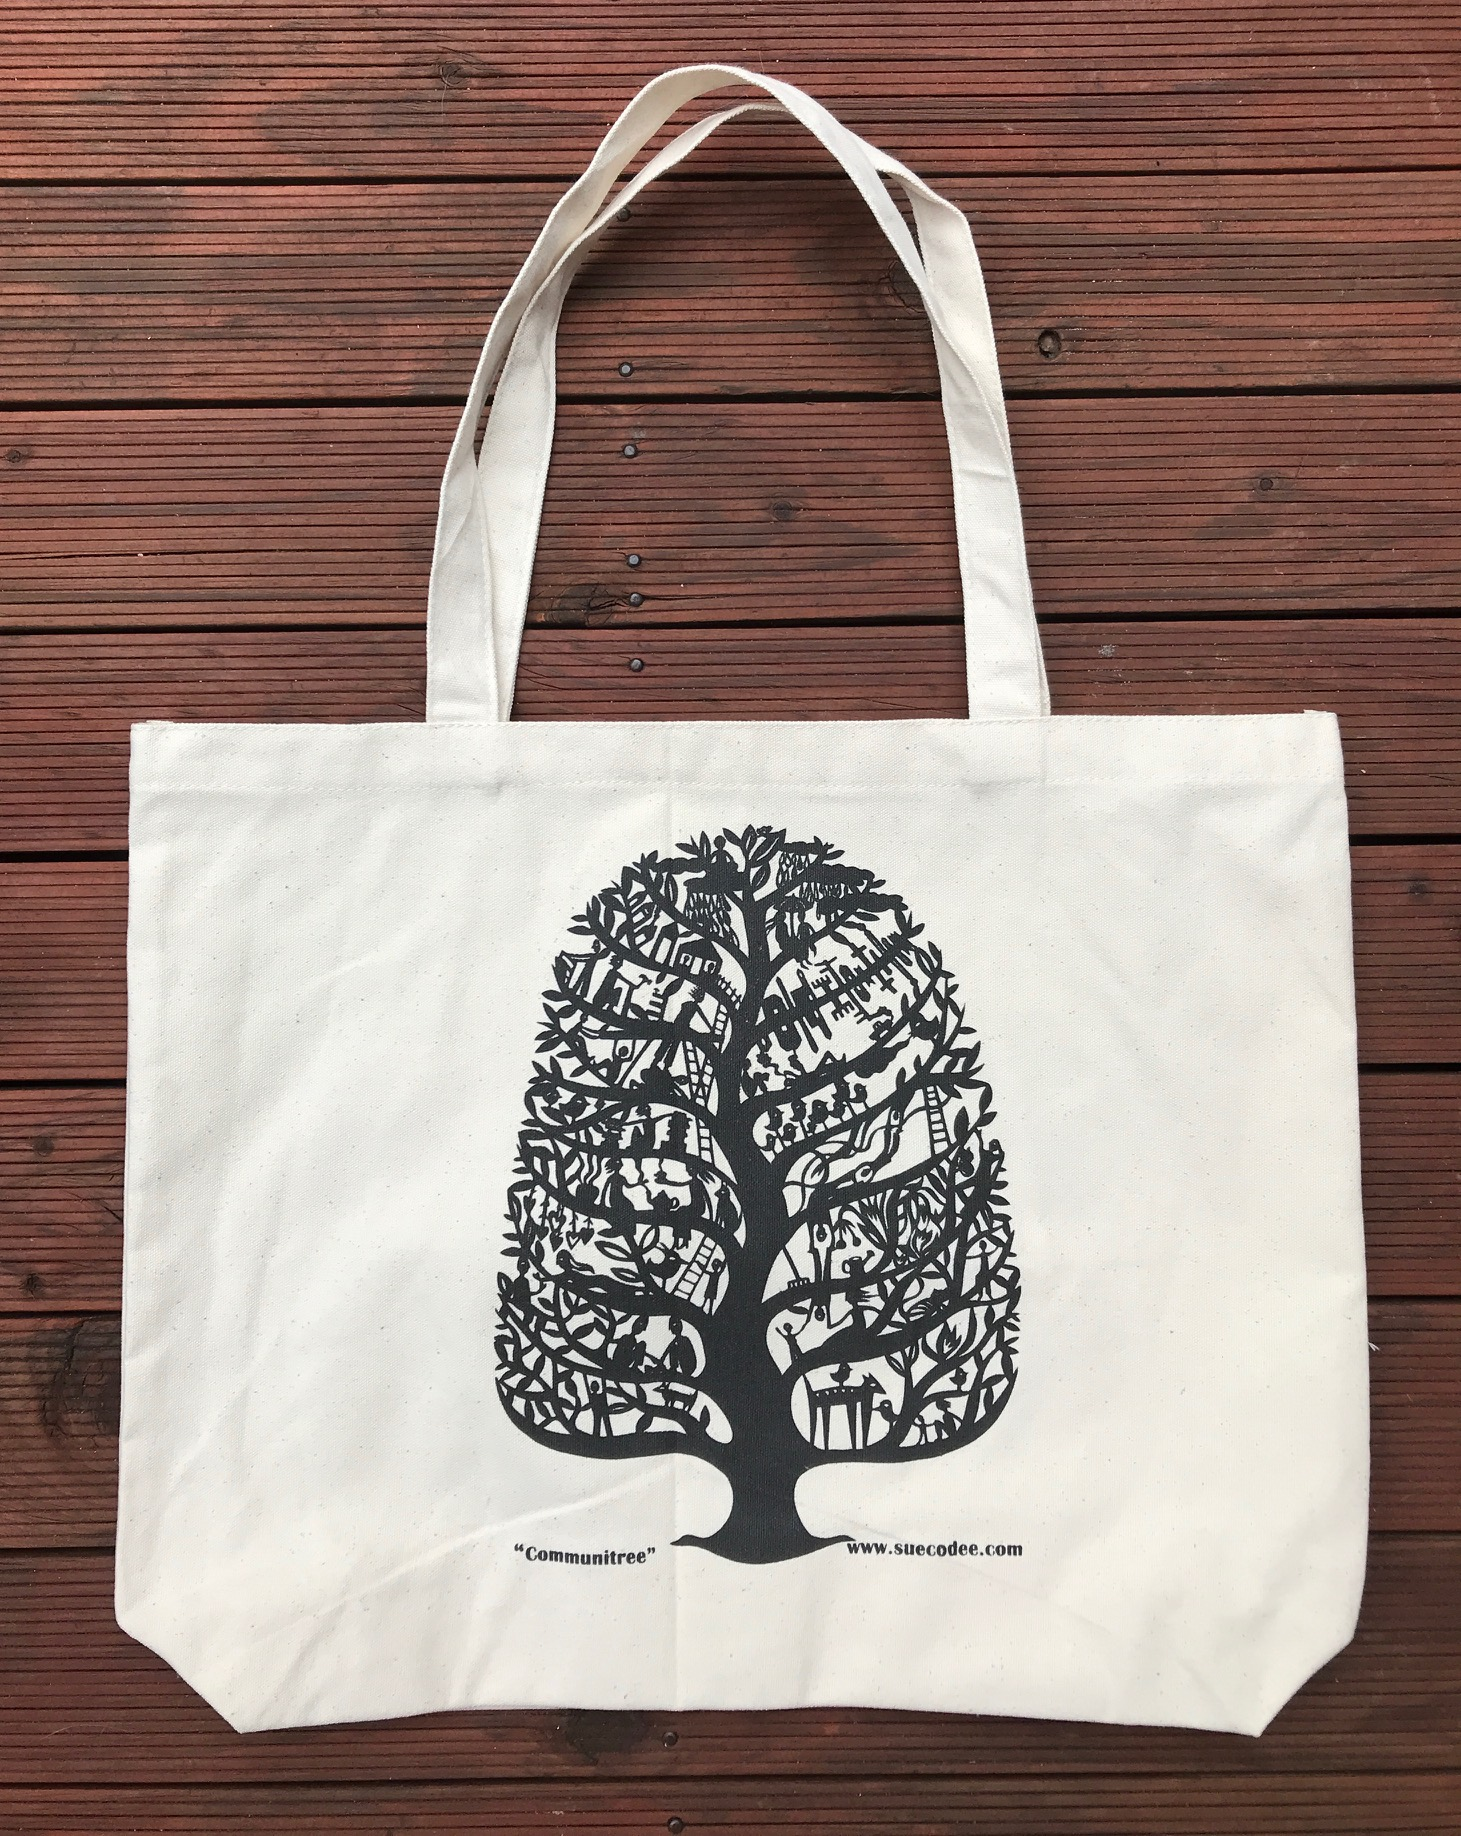 Communitree Canvas Tote Bag